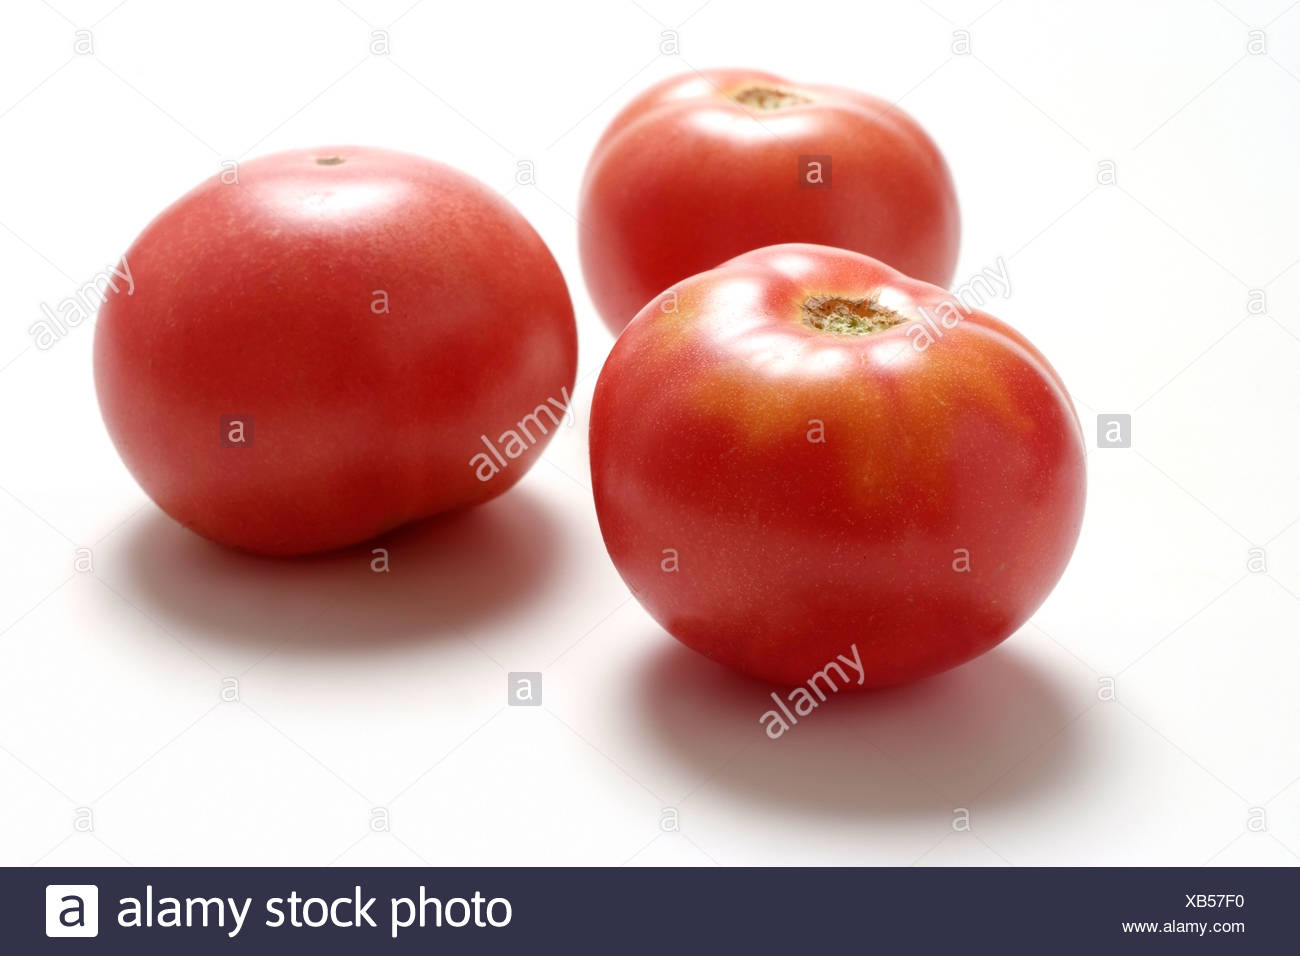 Tomato varieties: Red russian tomato - Stock Image